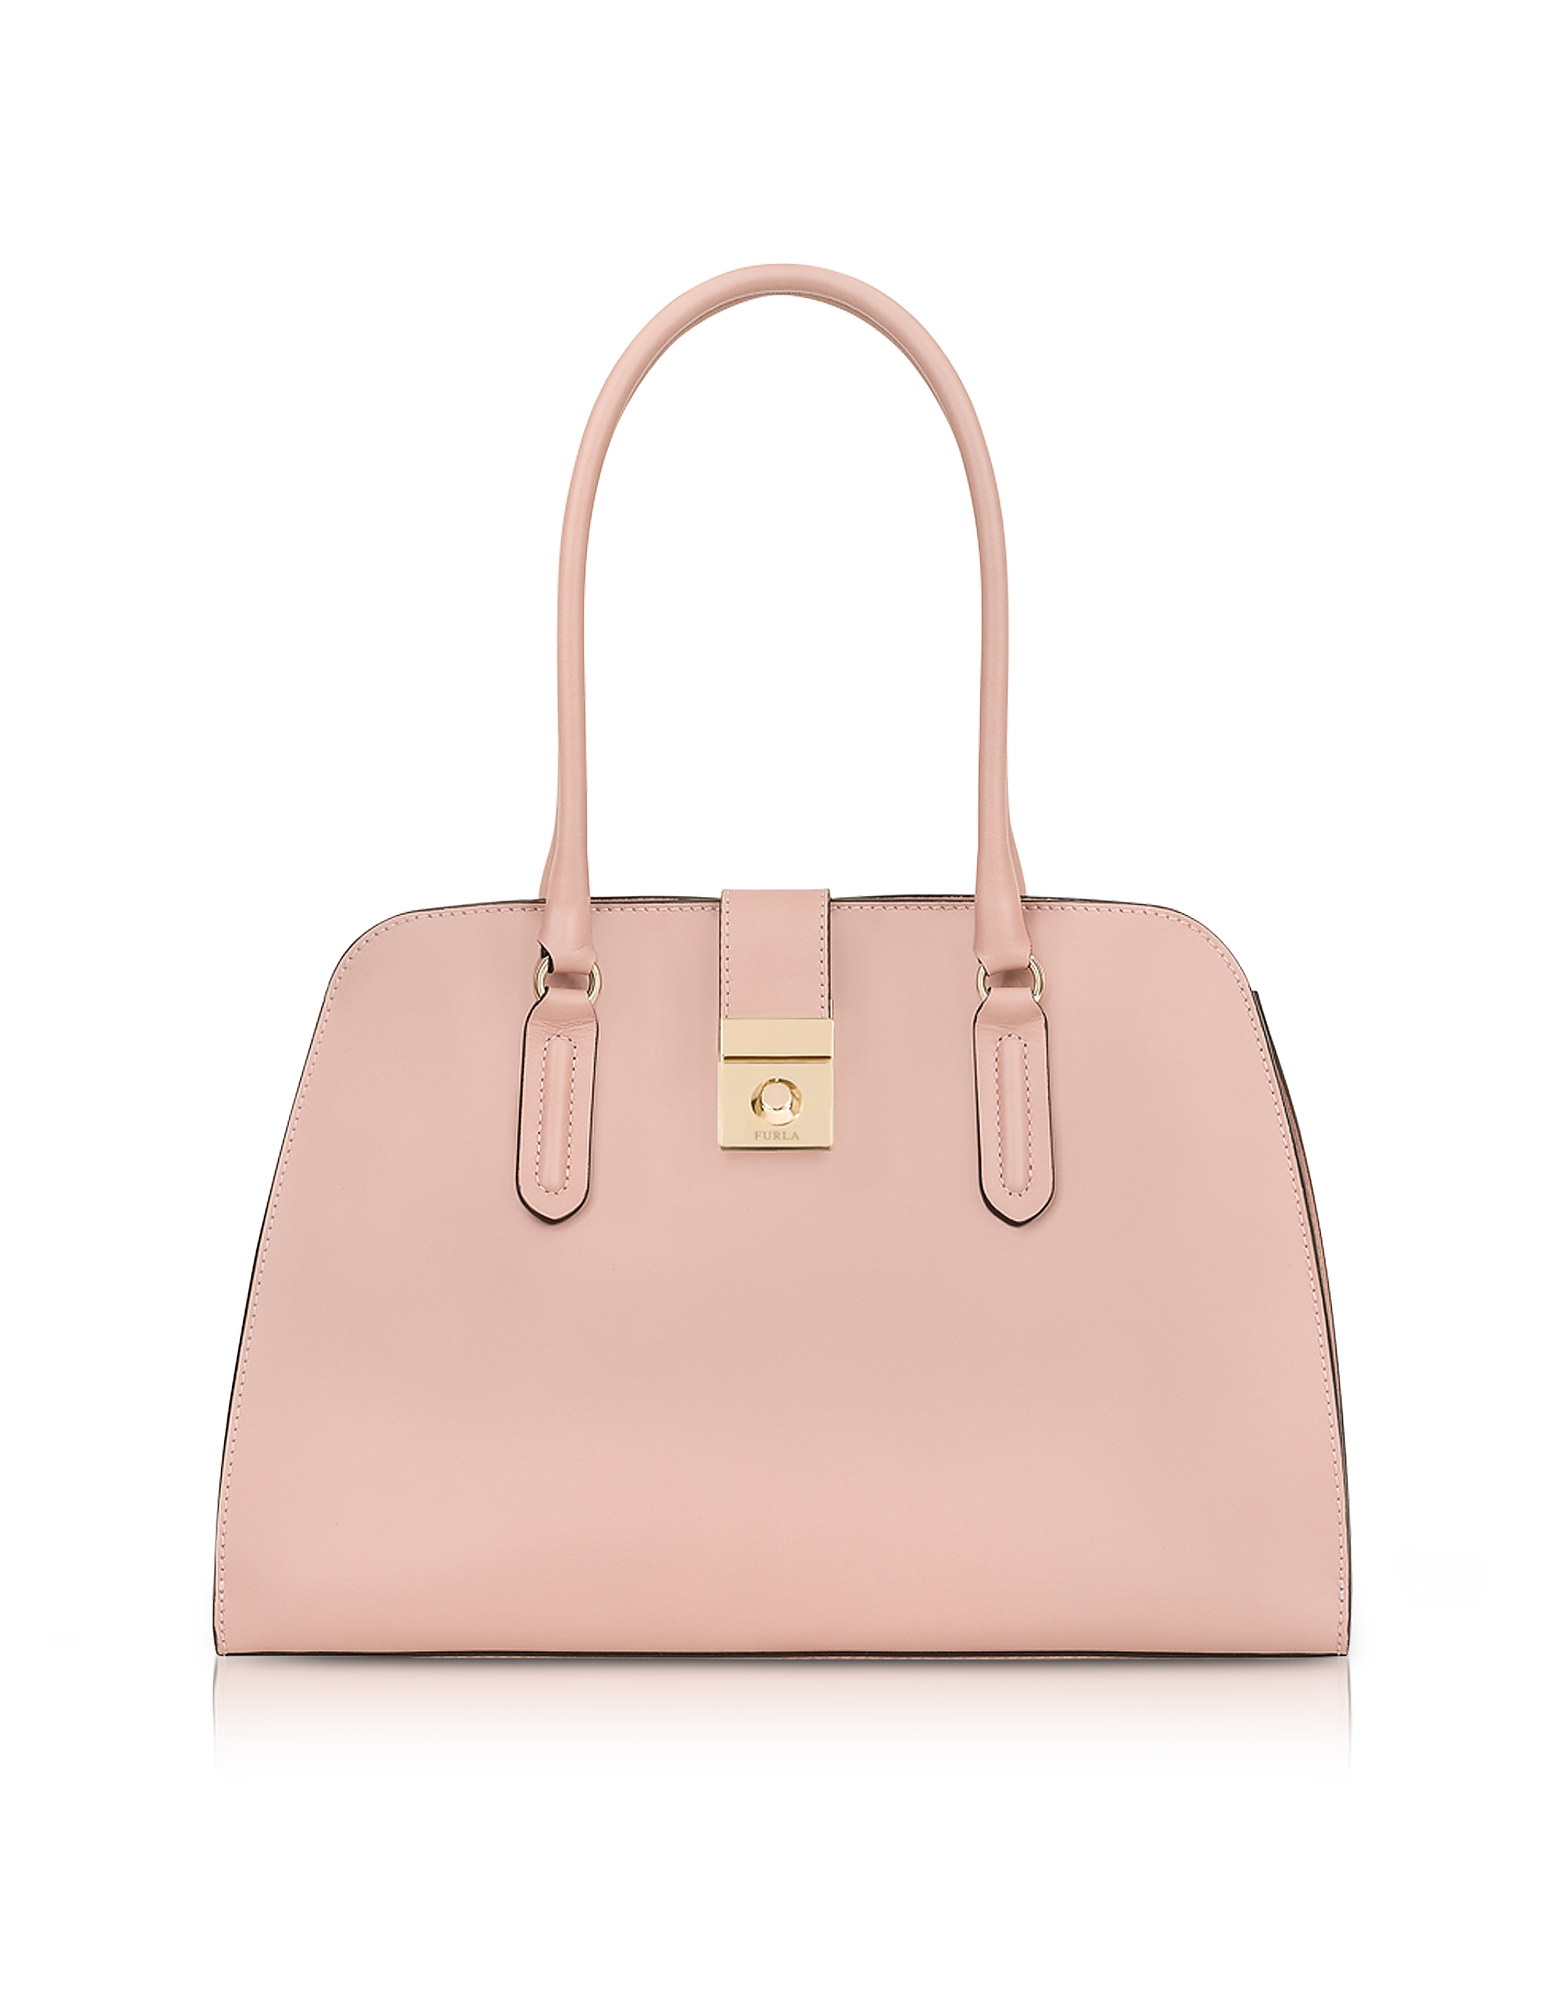 Furla Handbags, Moonstone Milano Medium Leather Tote Bag